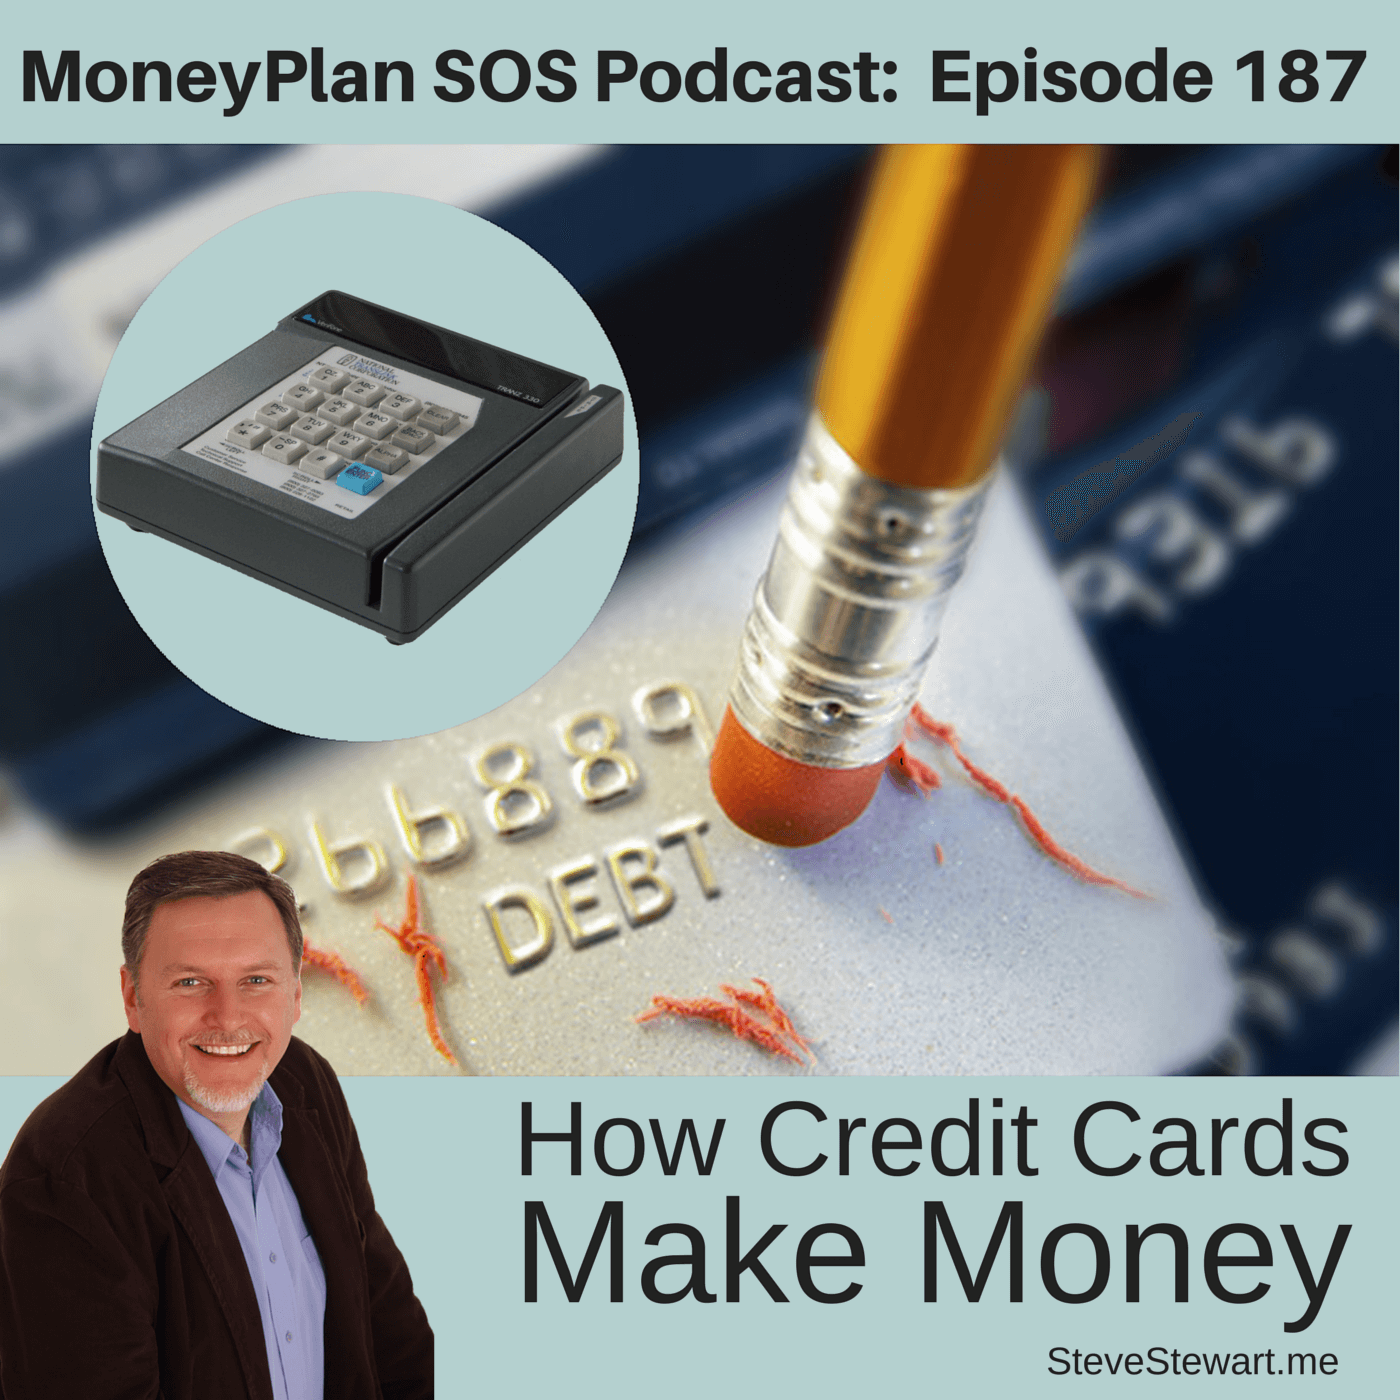 How Credit Cards Make Money - ON YOU!